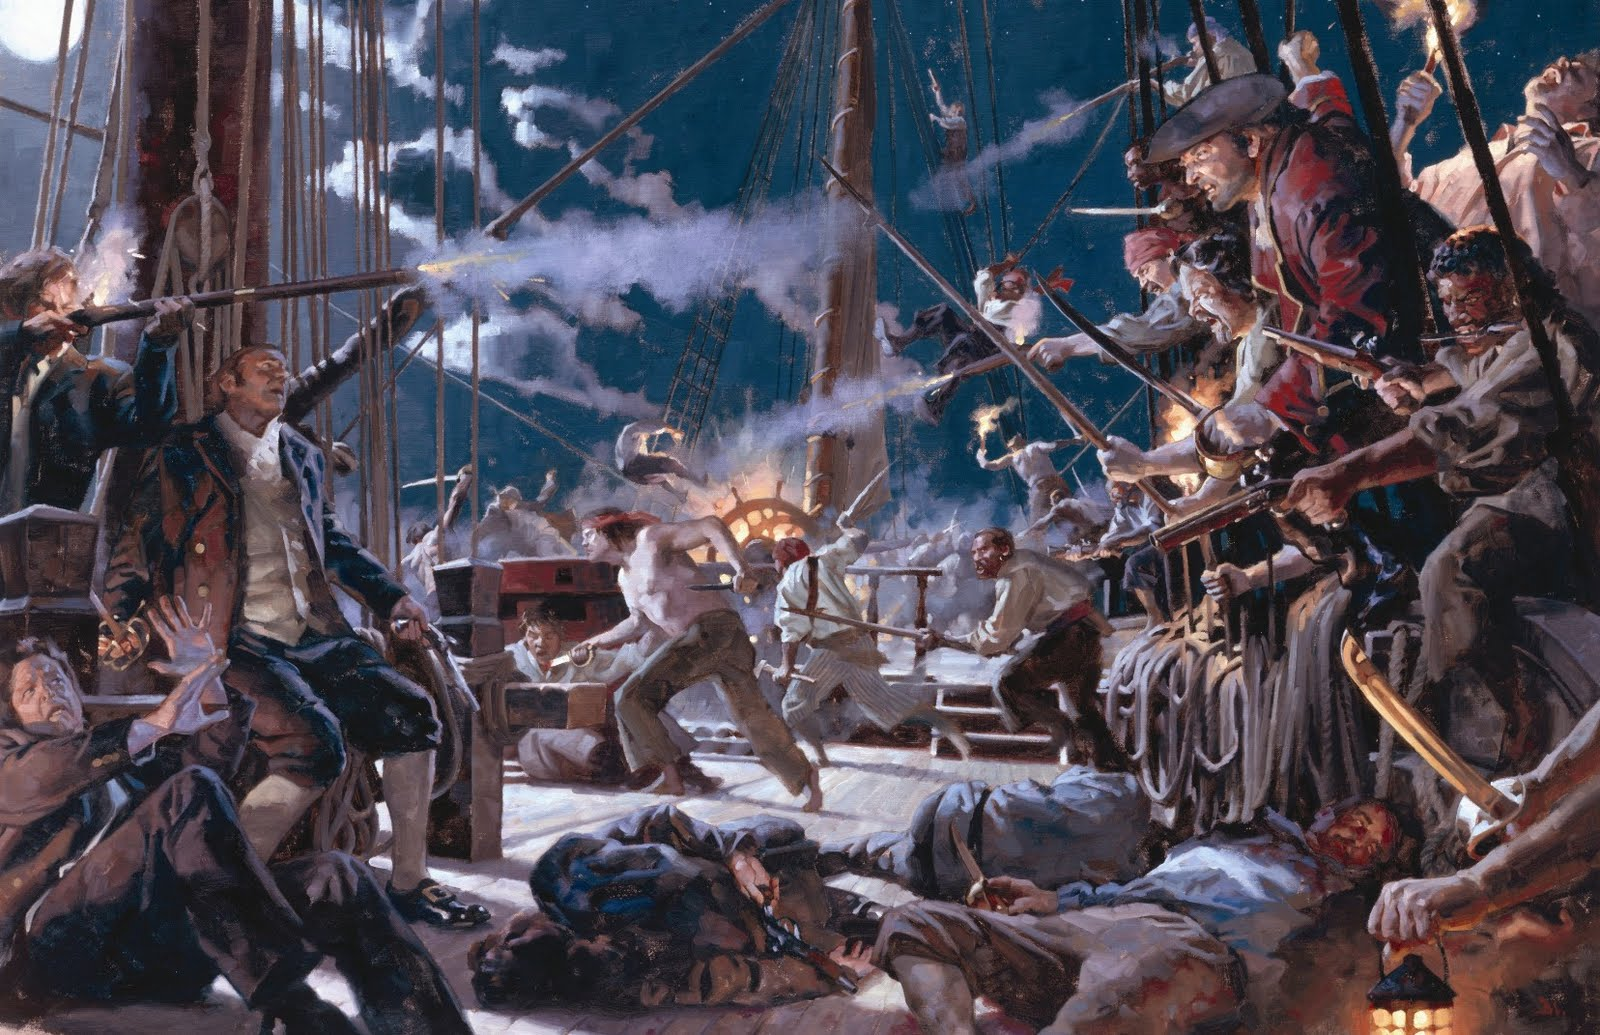 Pirates: Swashbucklers!: Real Pirates Exhibition